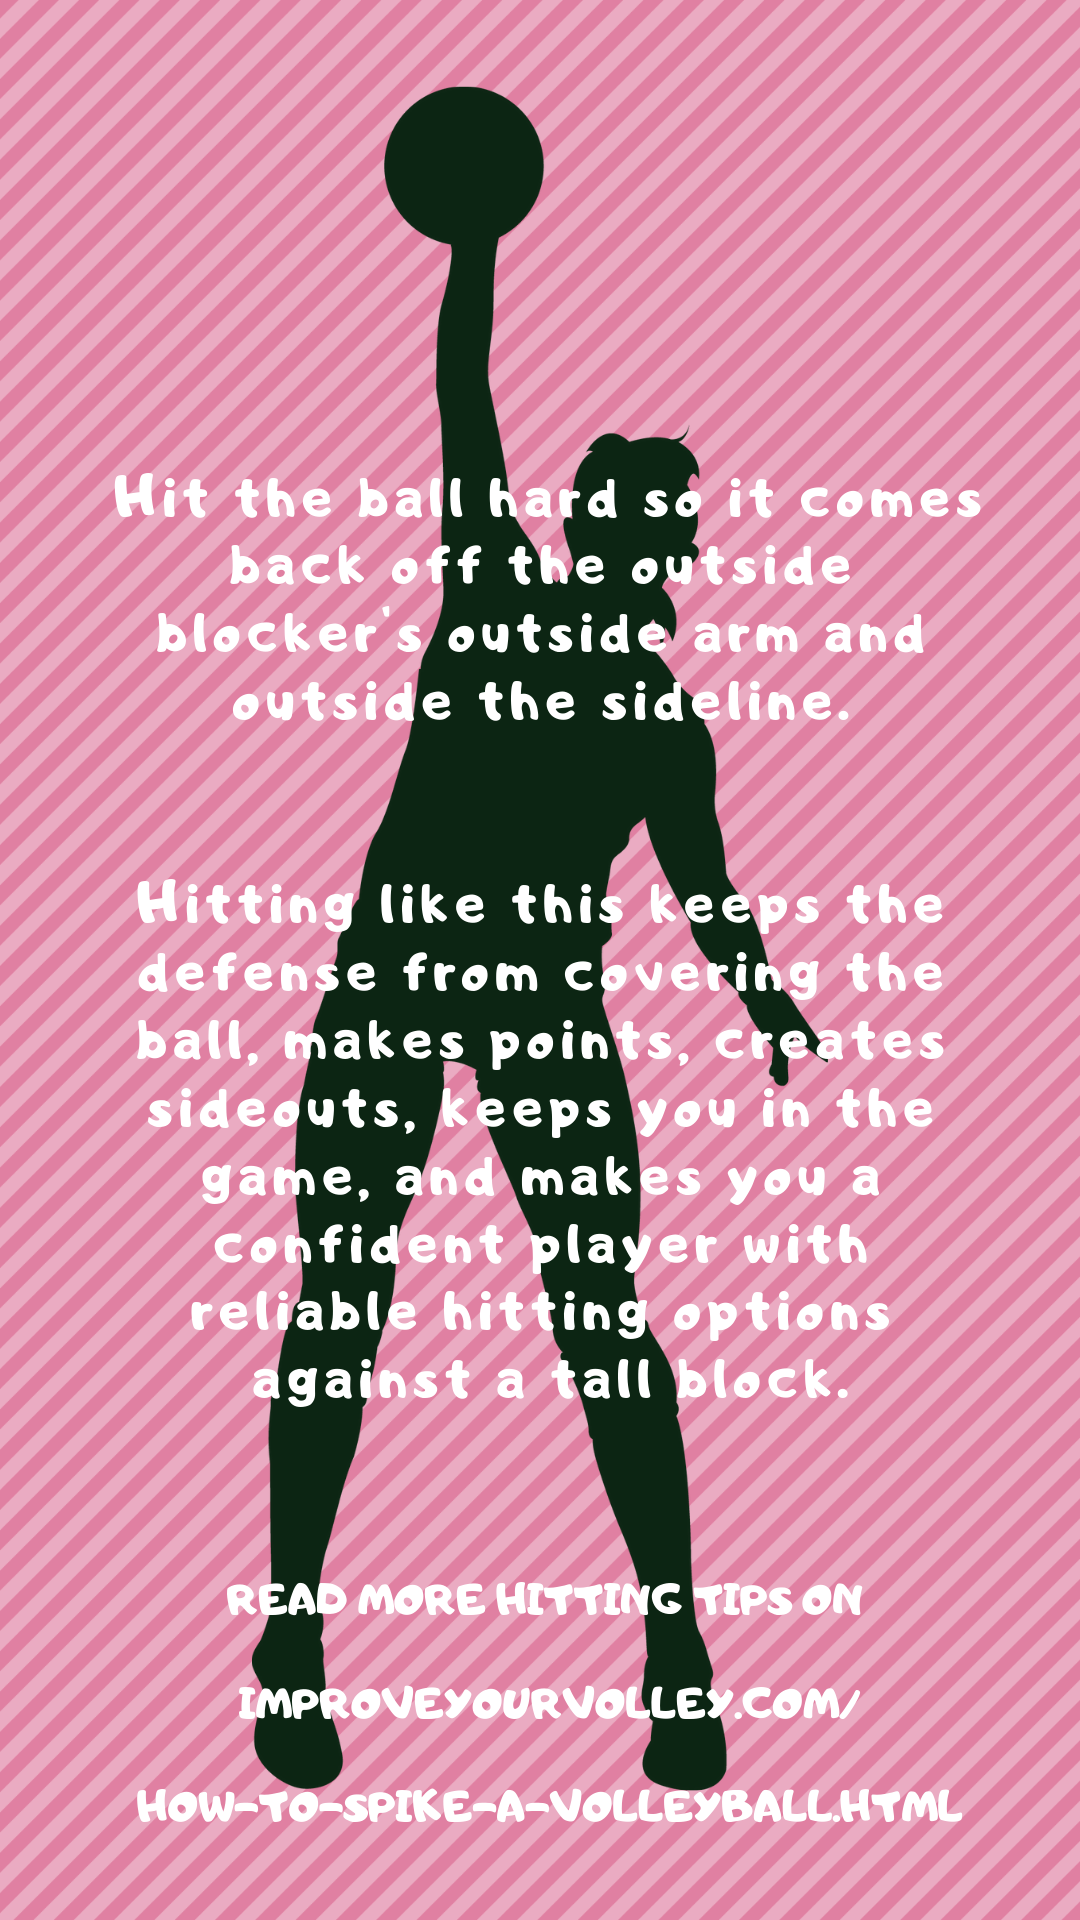 Hit the ball hard so it comes back off her arm and outside the sideline. Hitting like this keeps the defense from covering the ball, makes points, creates sideouts, keeps you in the game...